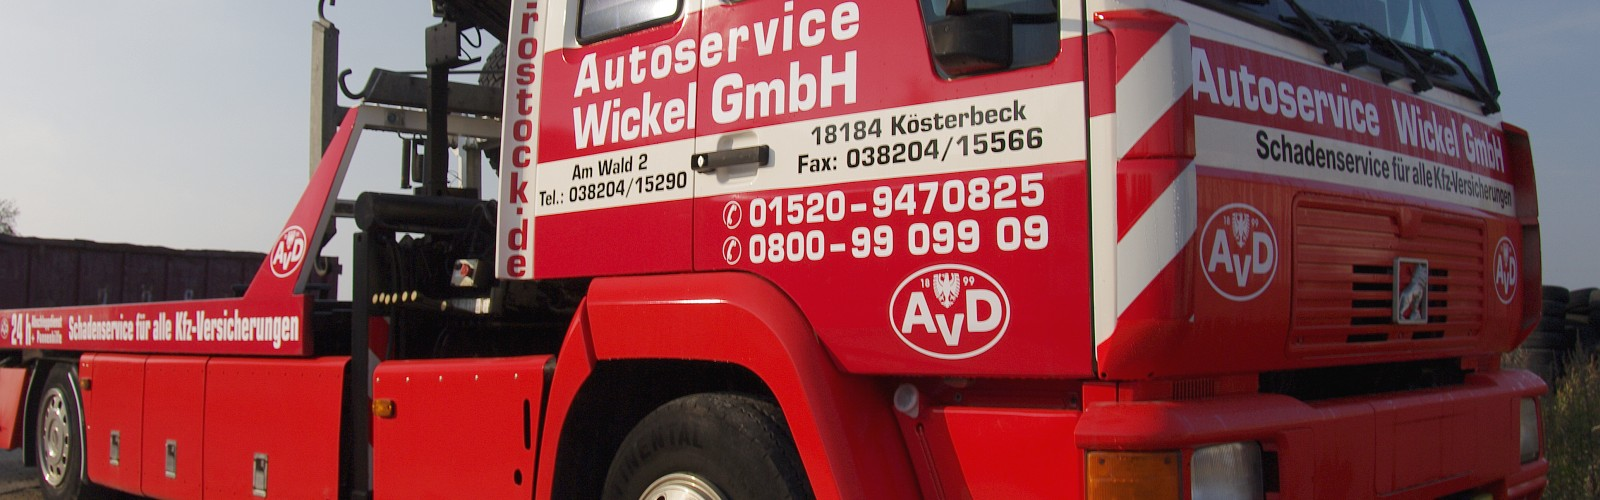 avd autoservice wickel abschleppdienst freie kfz werkstatt rostock. Black Bedroom Furniture Sets. Home Design Ideas